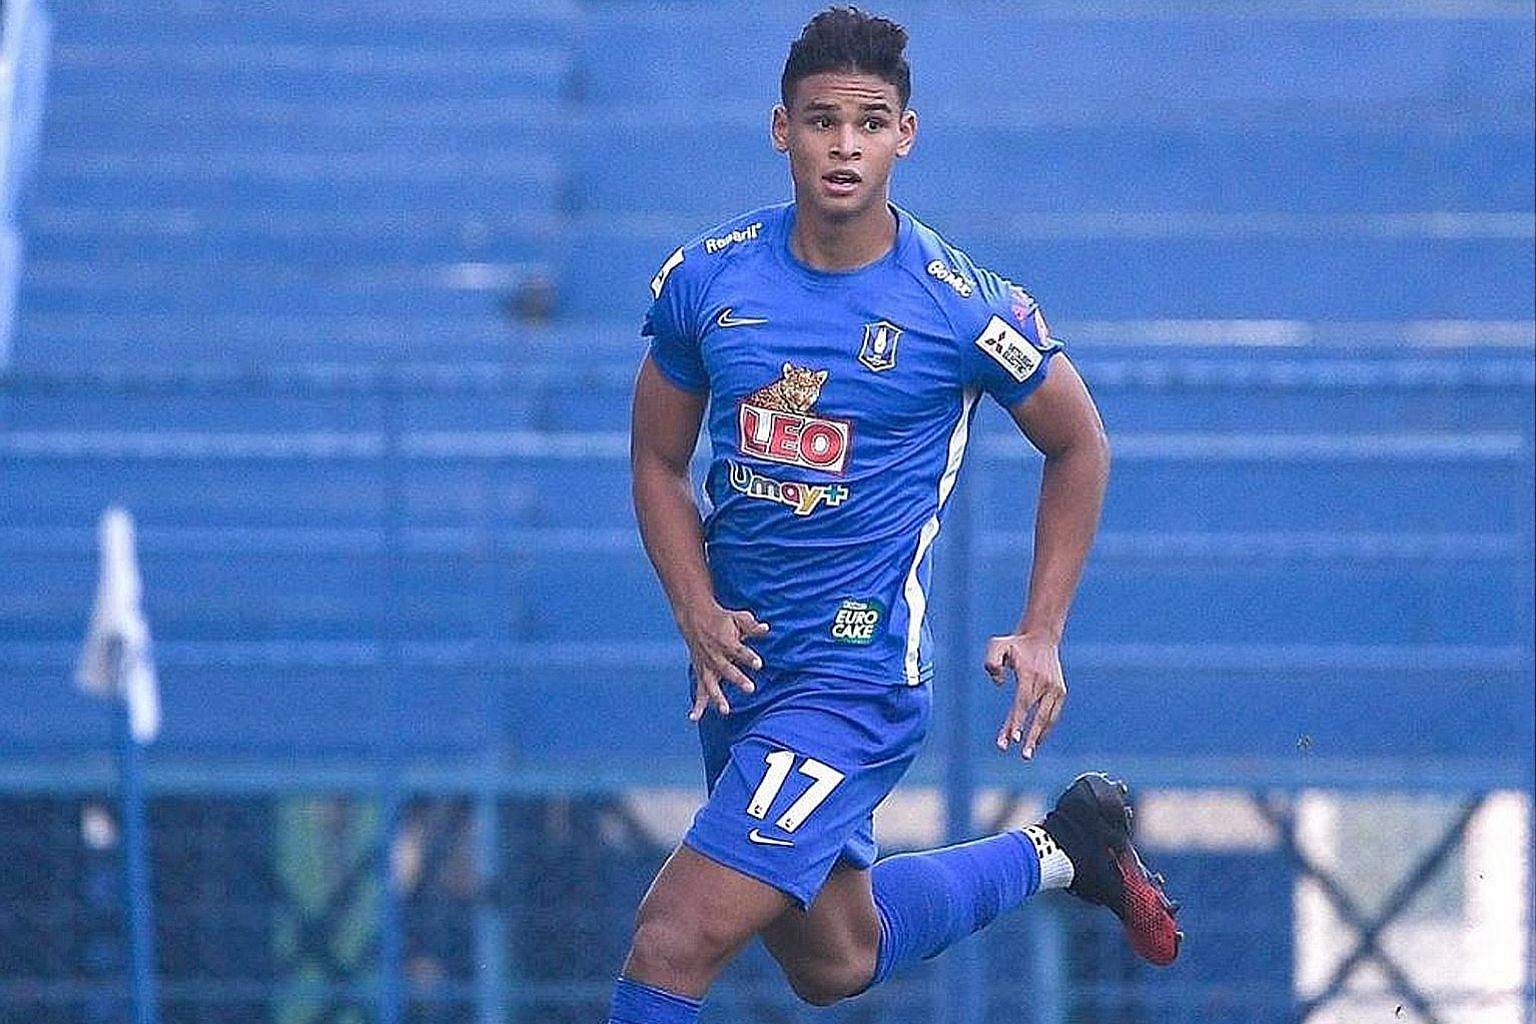 Left: Singapore's Irfan Fandi has helped to bolster BG Pathum United's defensive record. The Thai League 1 side have conceded just one goal in four games before the season was suspended because of the coronavirus pandemic. Below: With the gym closed